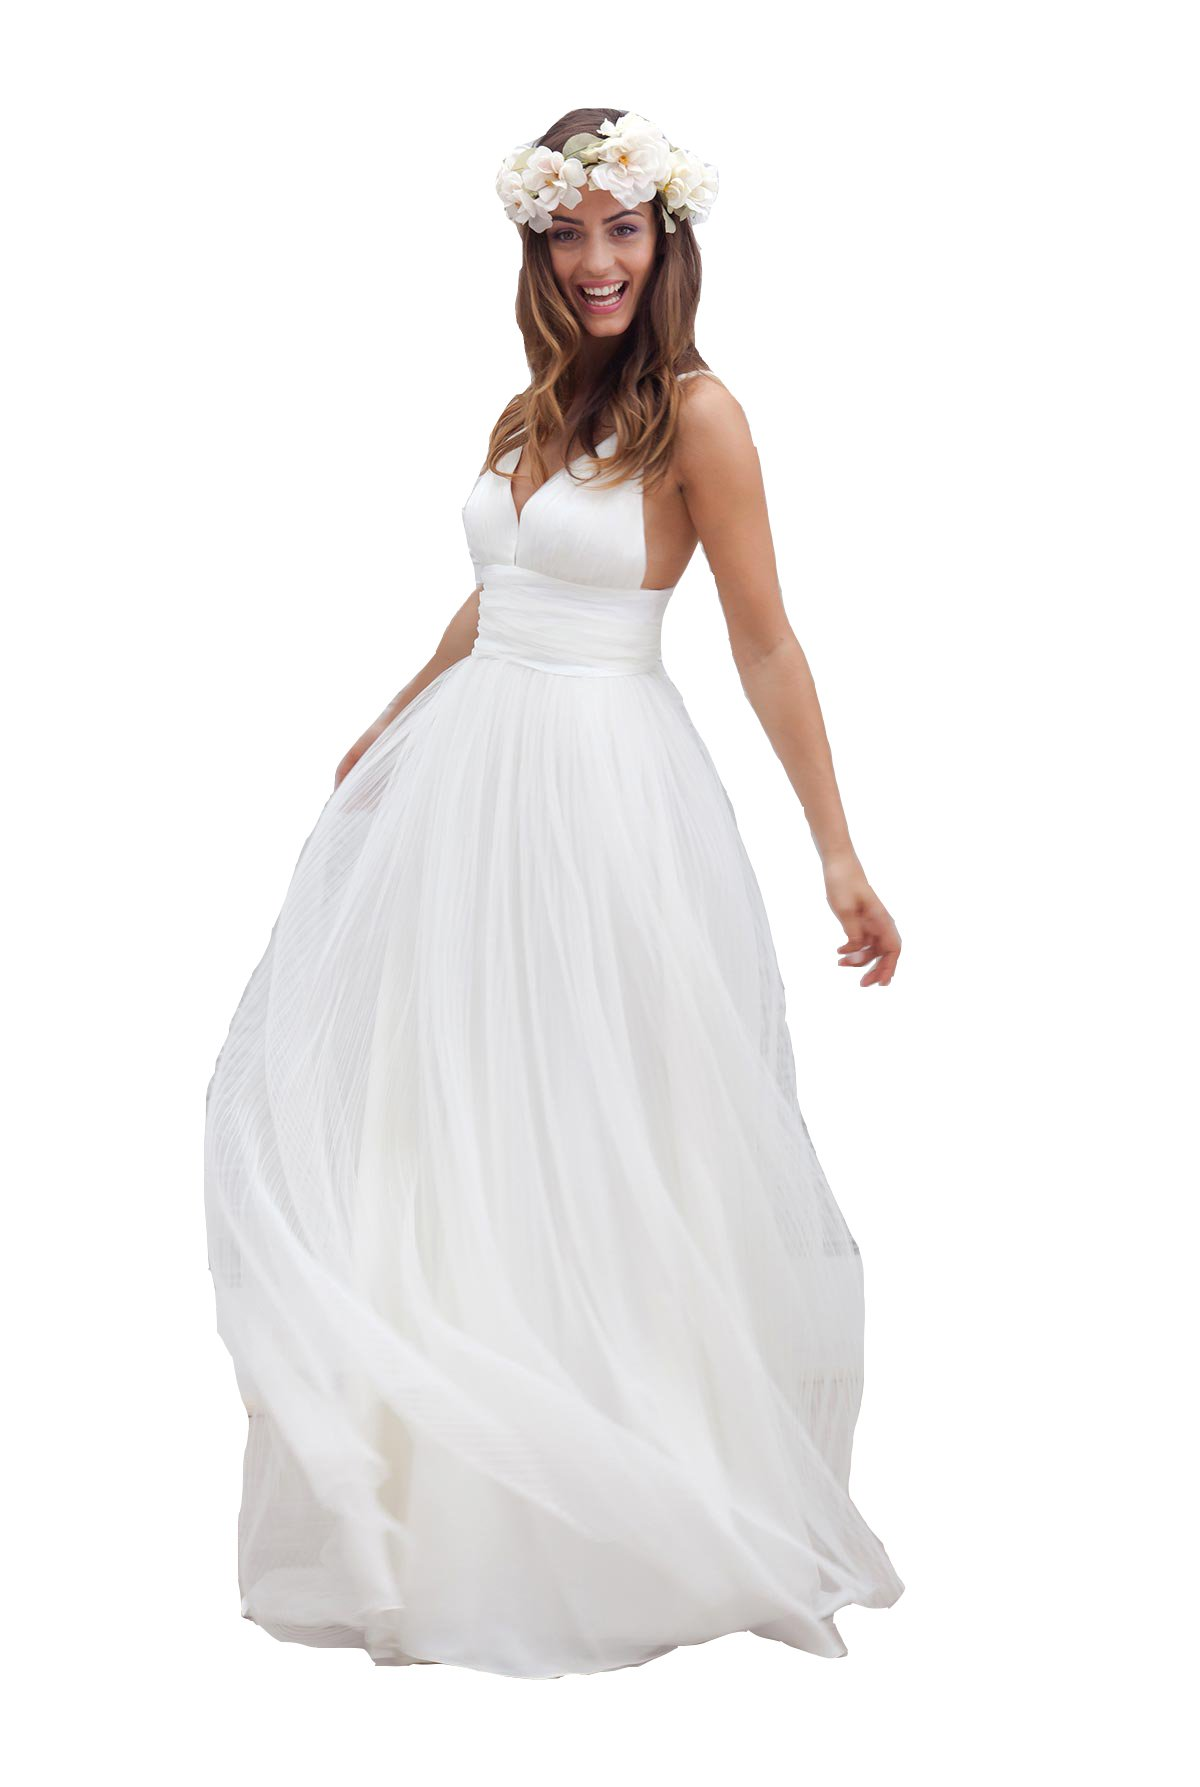 Irenwedding Women's Spaghetti Ruched Empire Waist Open Back Beach Wedding Dress White US14